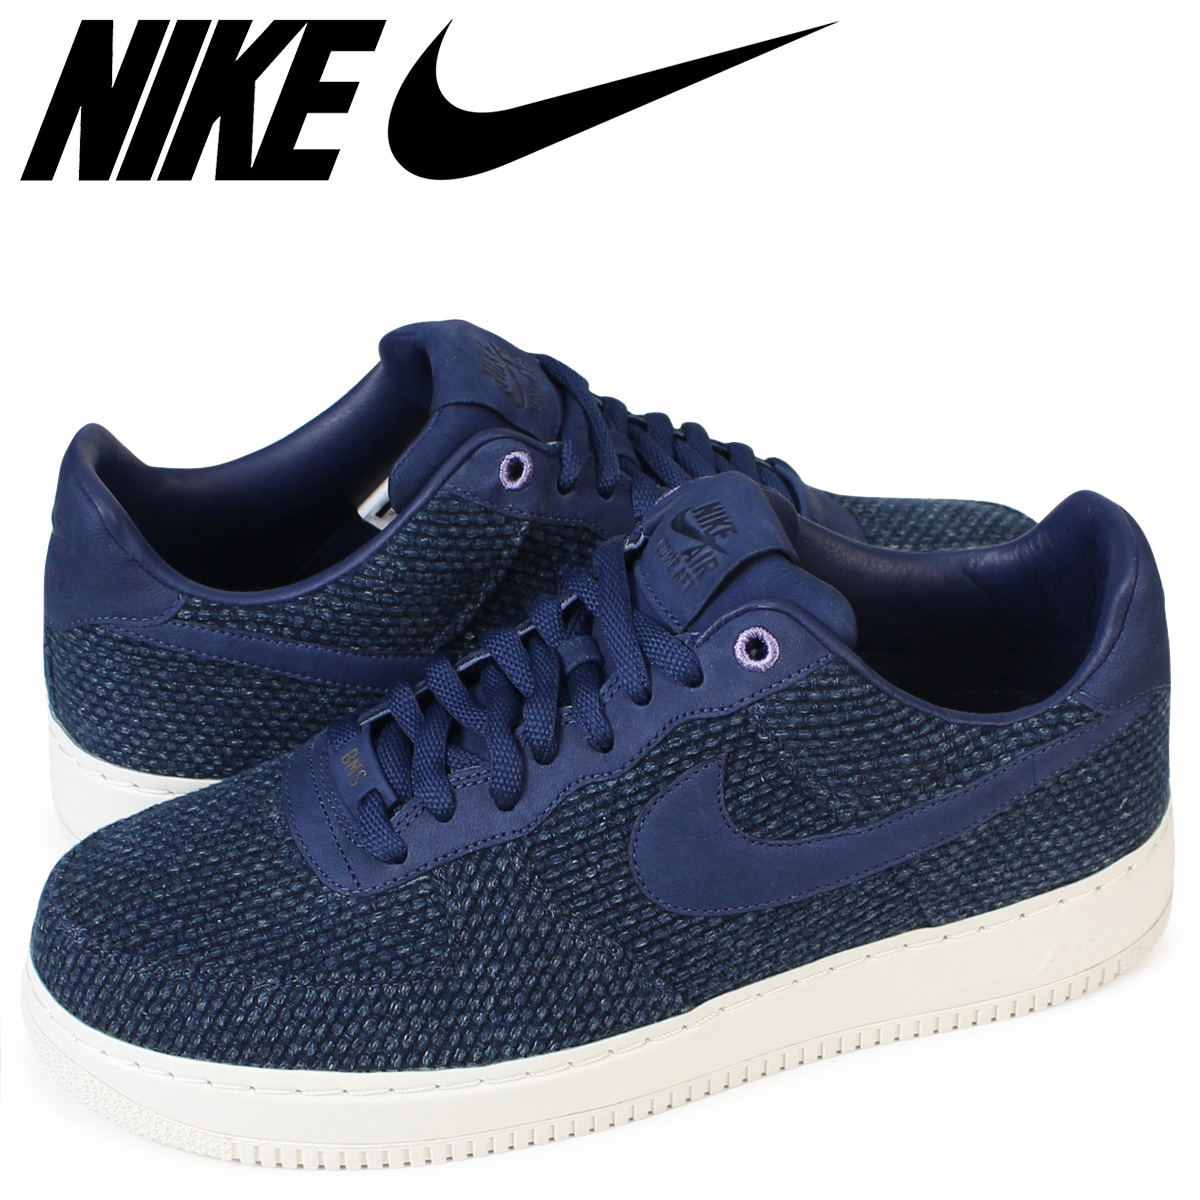 NIKE air force 1 sneakers AIR FORCE 1 LOW AIZOME AJ5514 991 low men shoes navy